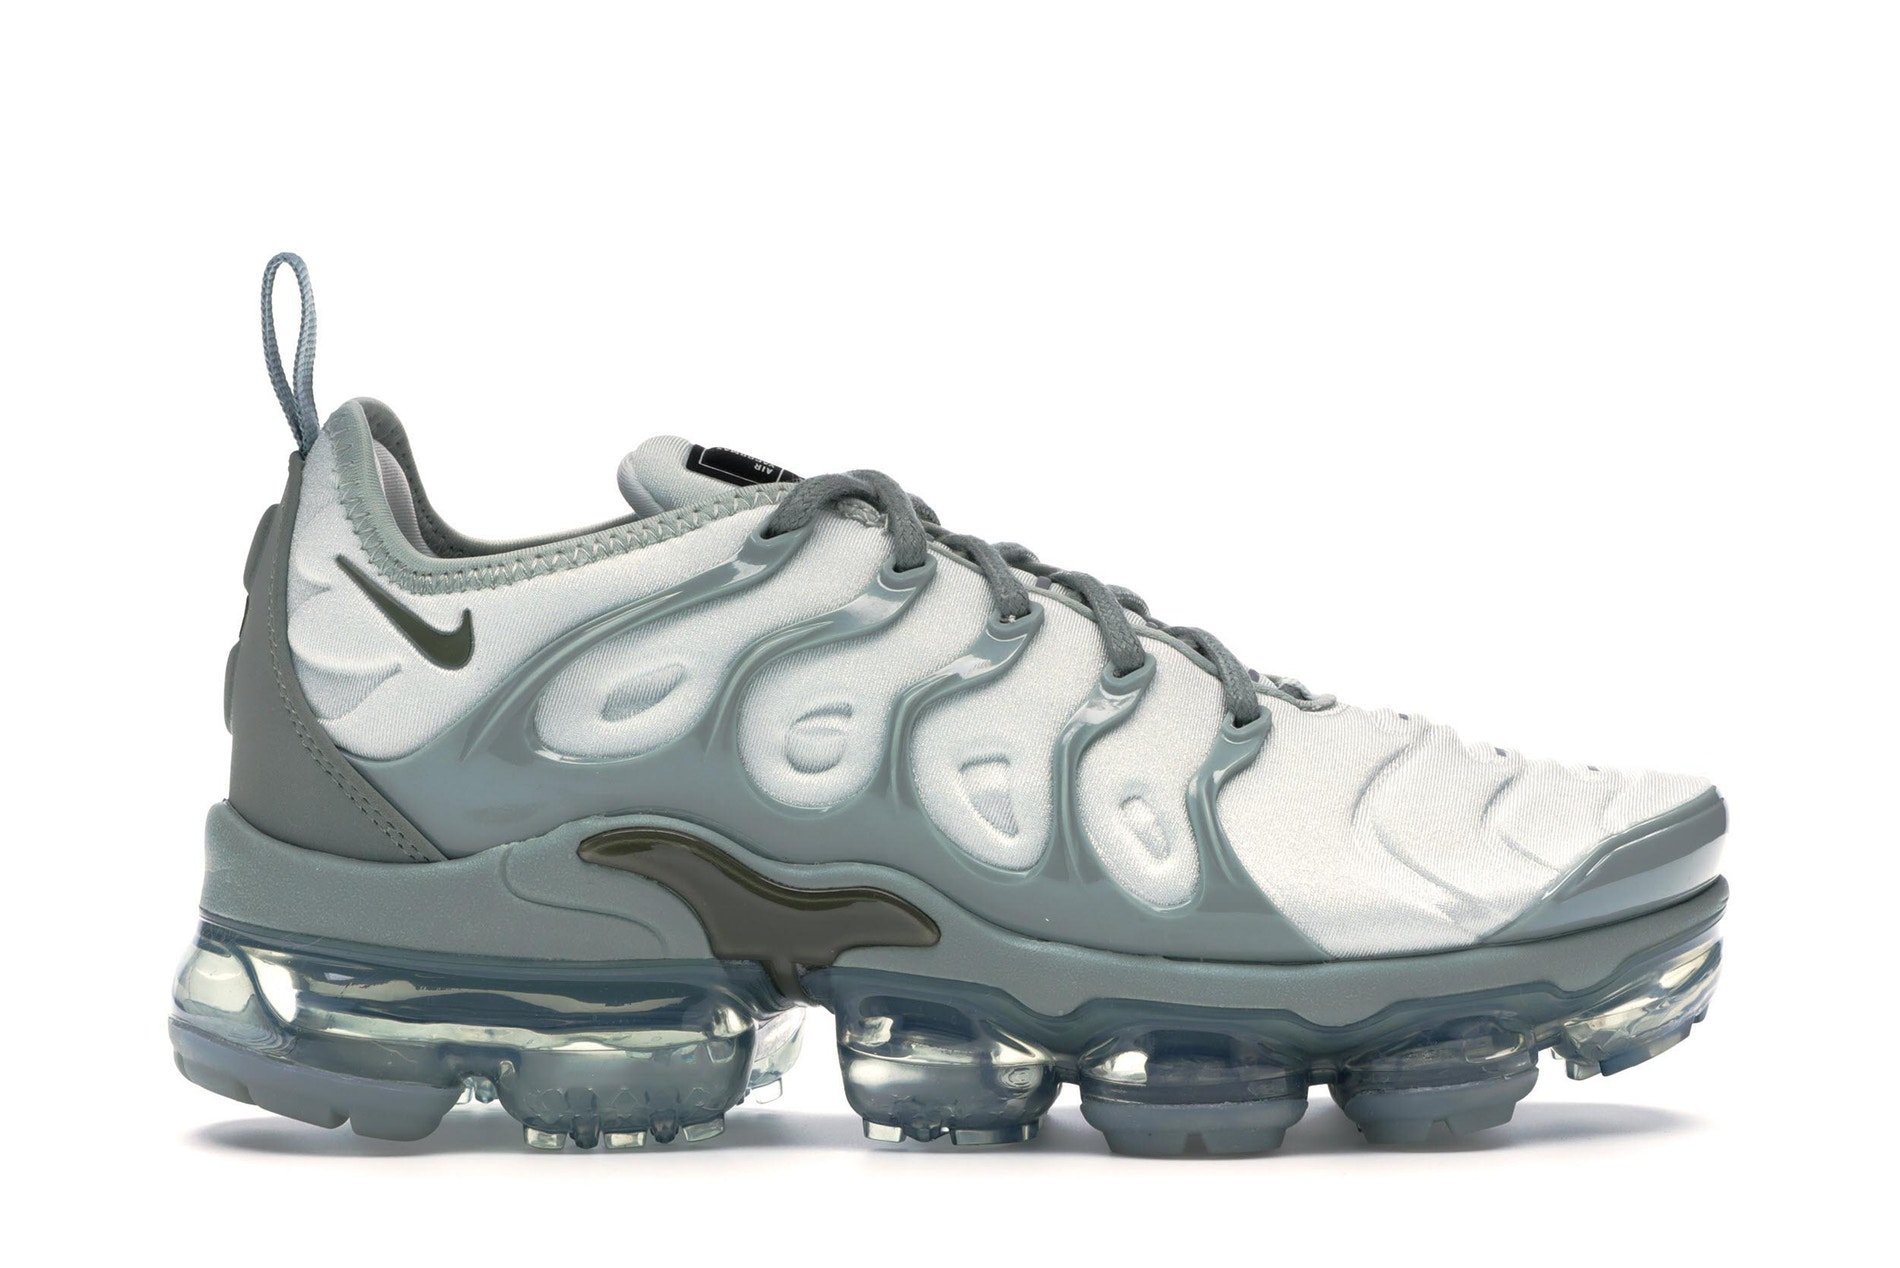 Nike Air Max VaporMax Shoes New Lowest Asks